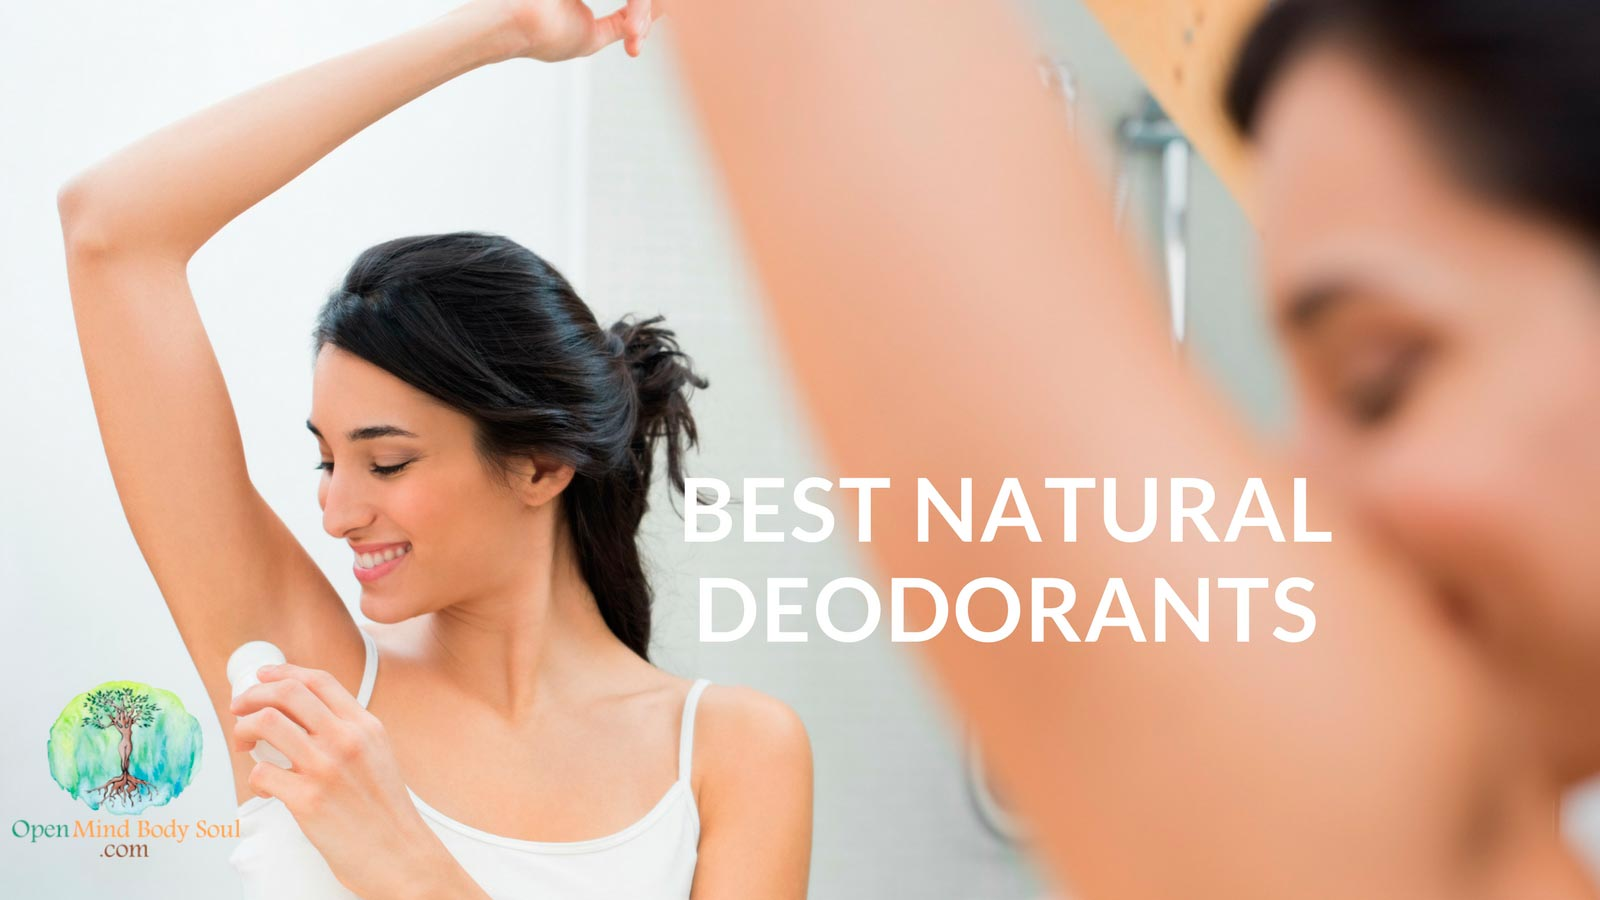 Best Natural deodorants that actually work, selected after careful review and research.